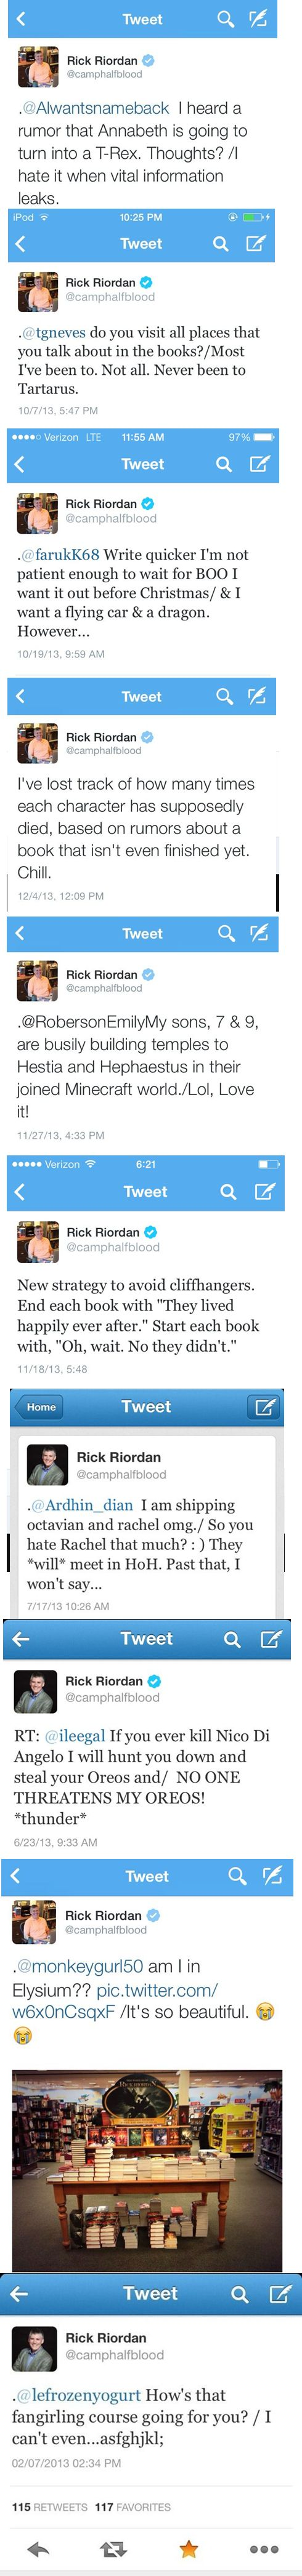 Rick Riordan tweets. 2 points. 1: Love his strategy for avoiding cliffhangers. 2: Even Rick hates Octavian.